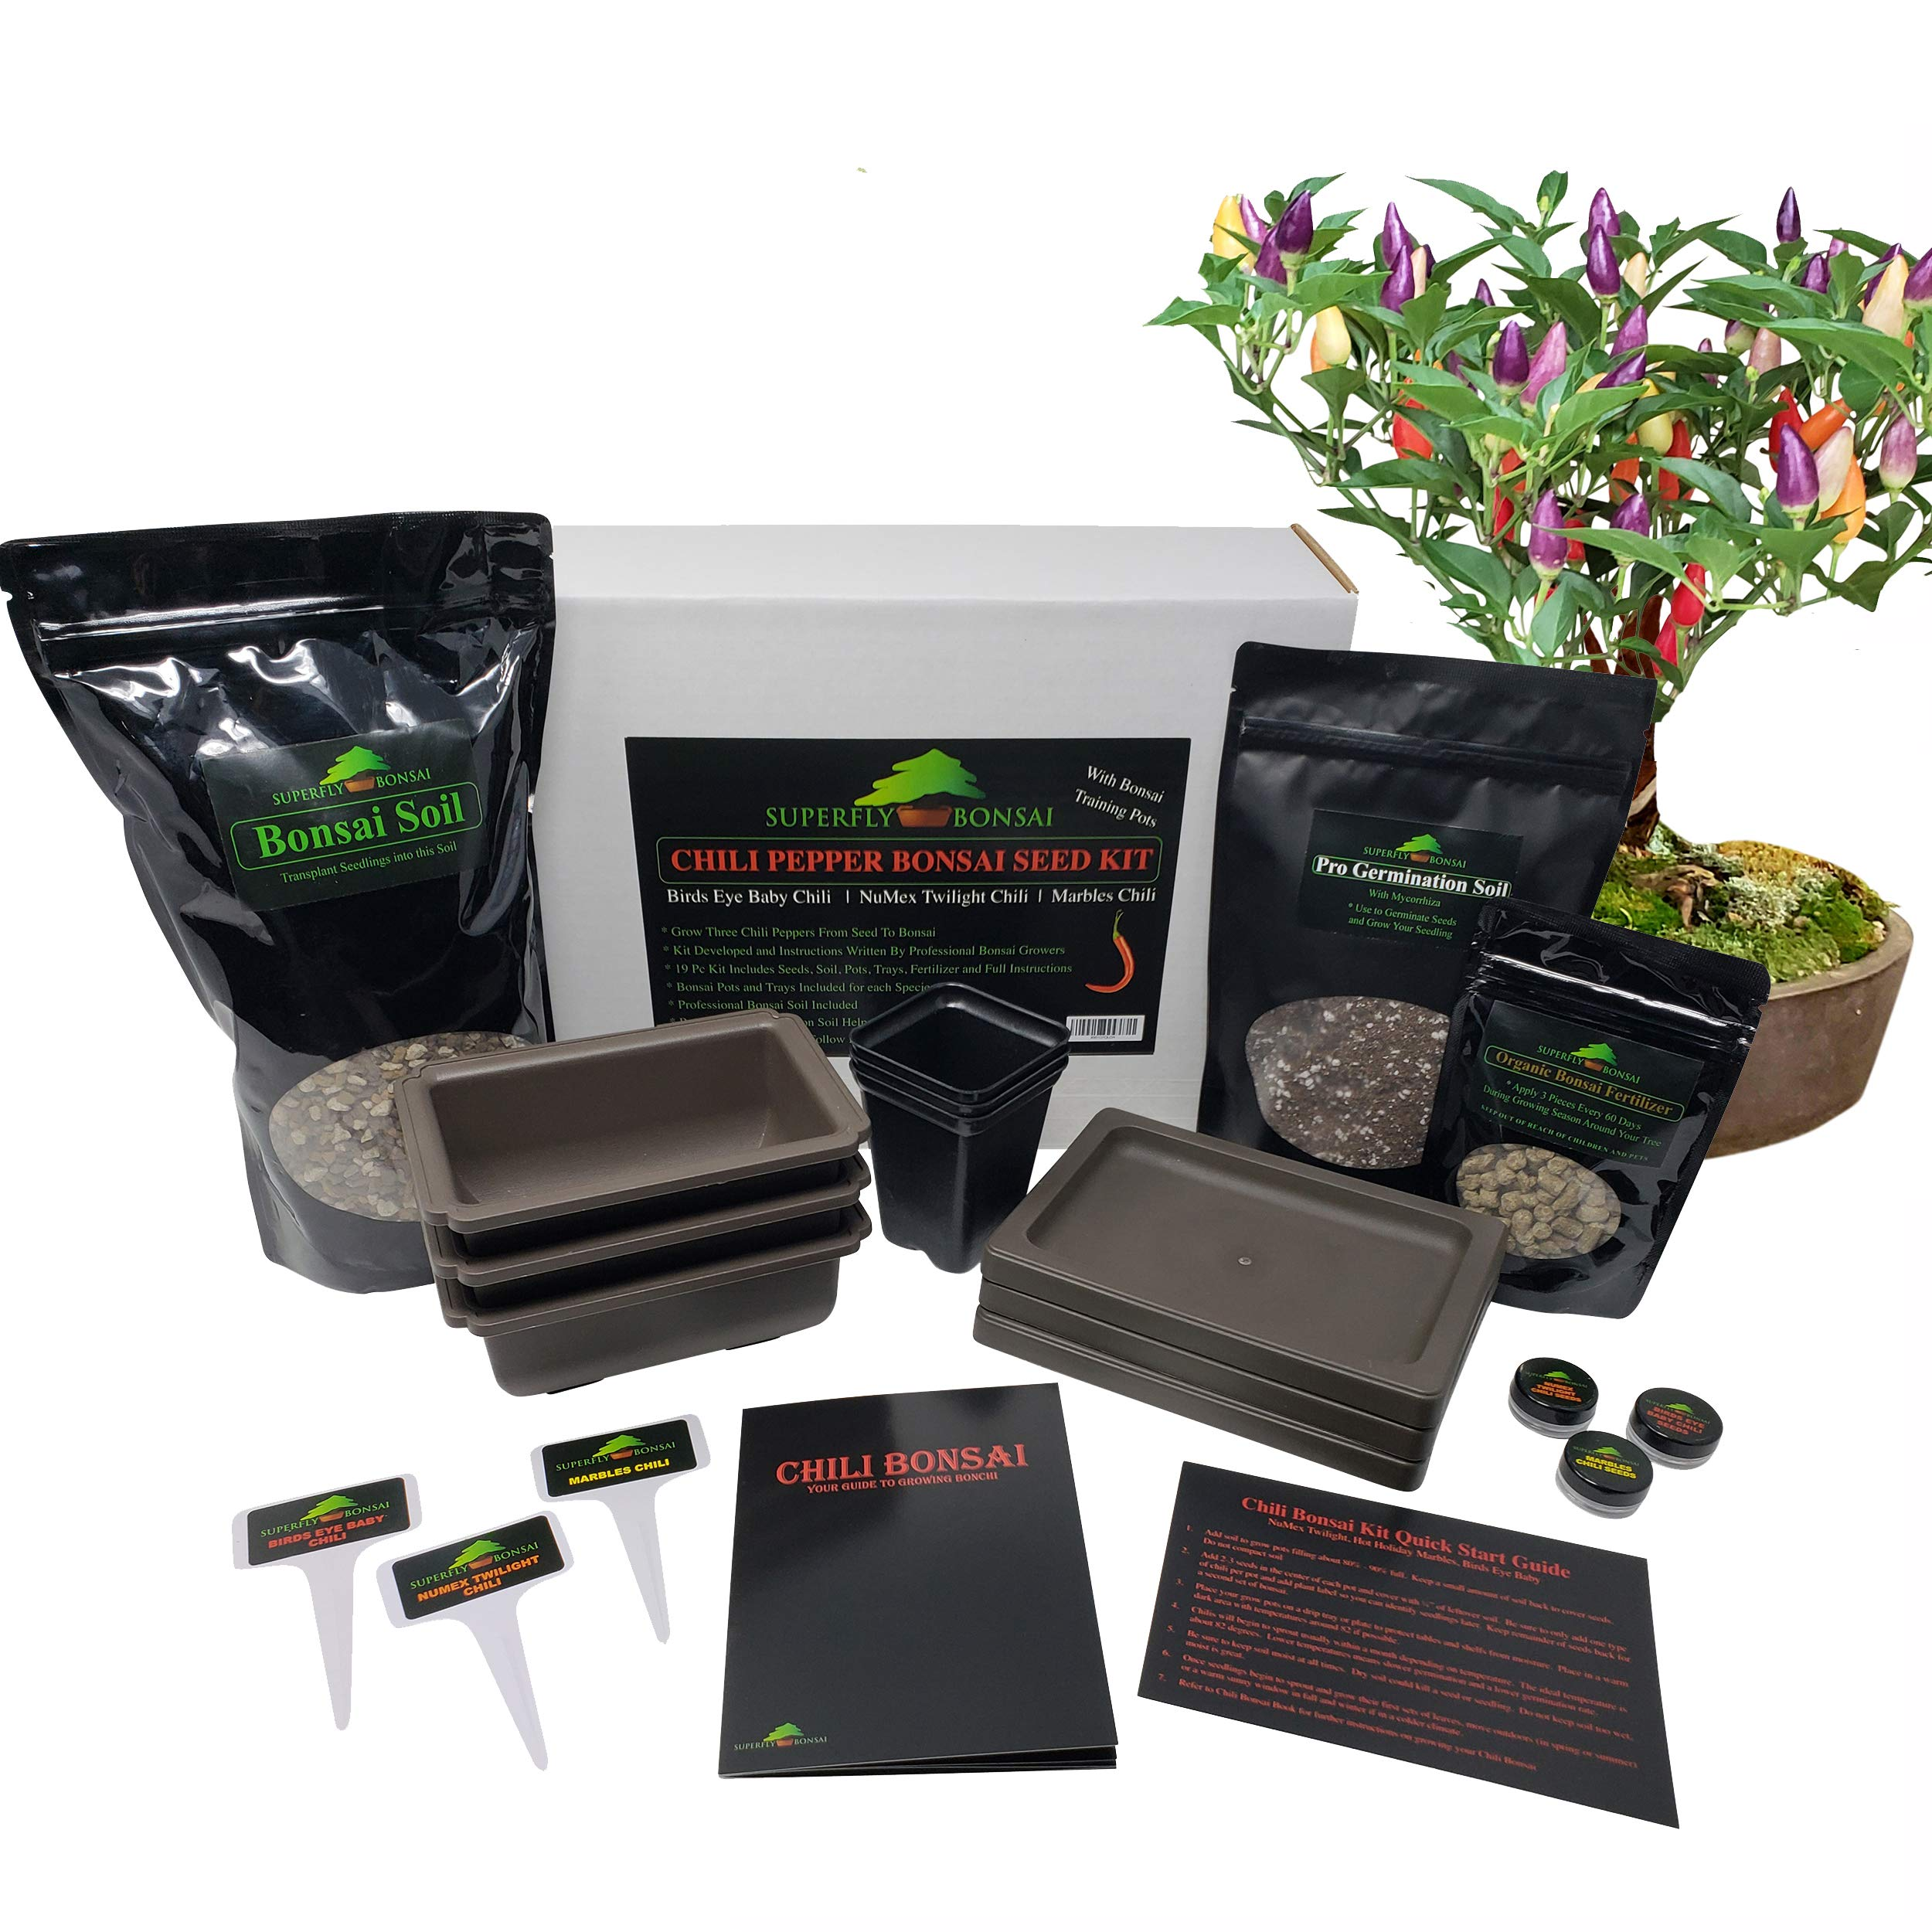 New Chili Bonsai Premium Bonsai Tree Starter Seed Kit - Bonchi Hot Peppers (Chili Bonsai Kit Level 2) by Superfly Bonsai (Image #1)